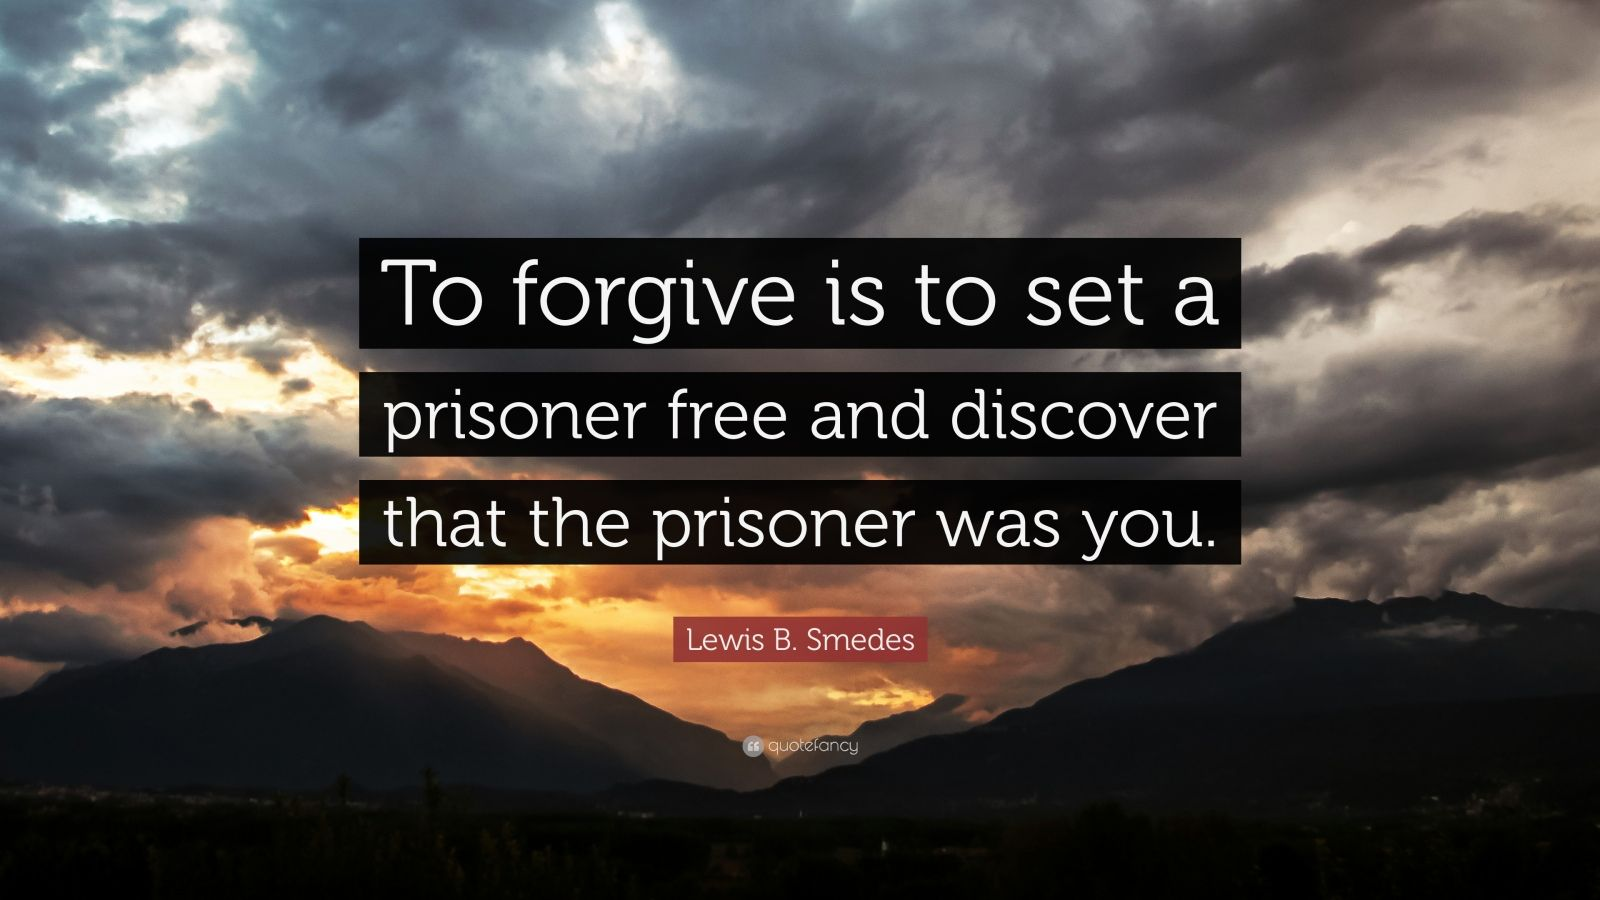 Friendship Quote Wallpapers Free Lewis B Smedes Quote To Forgive Is To Set A Prisoner